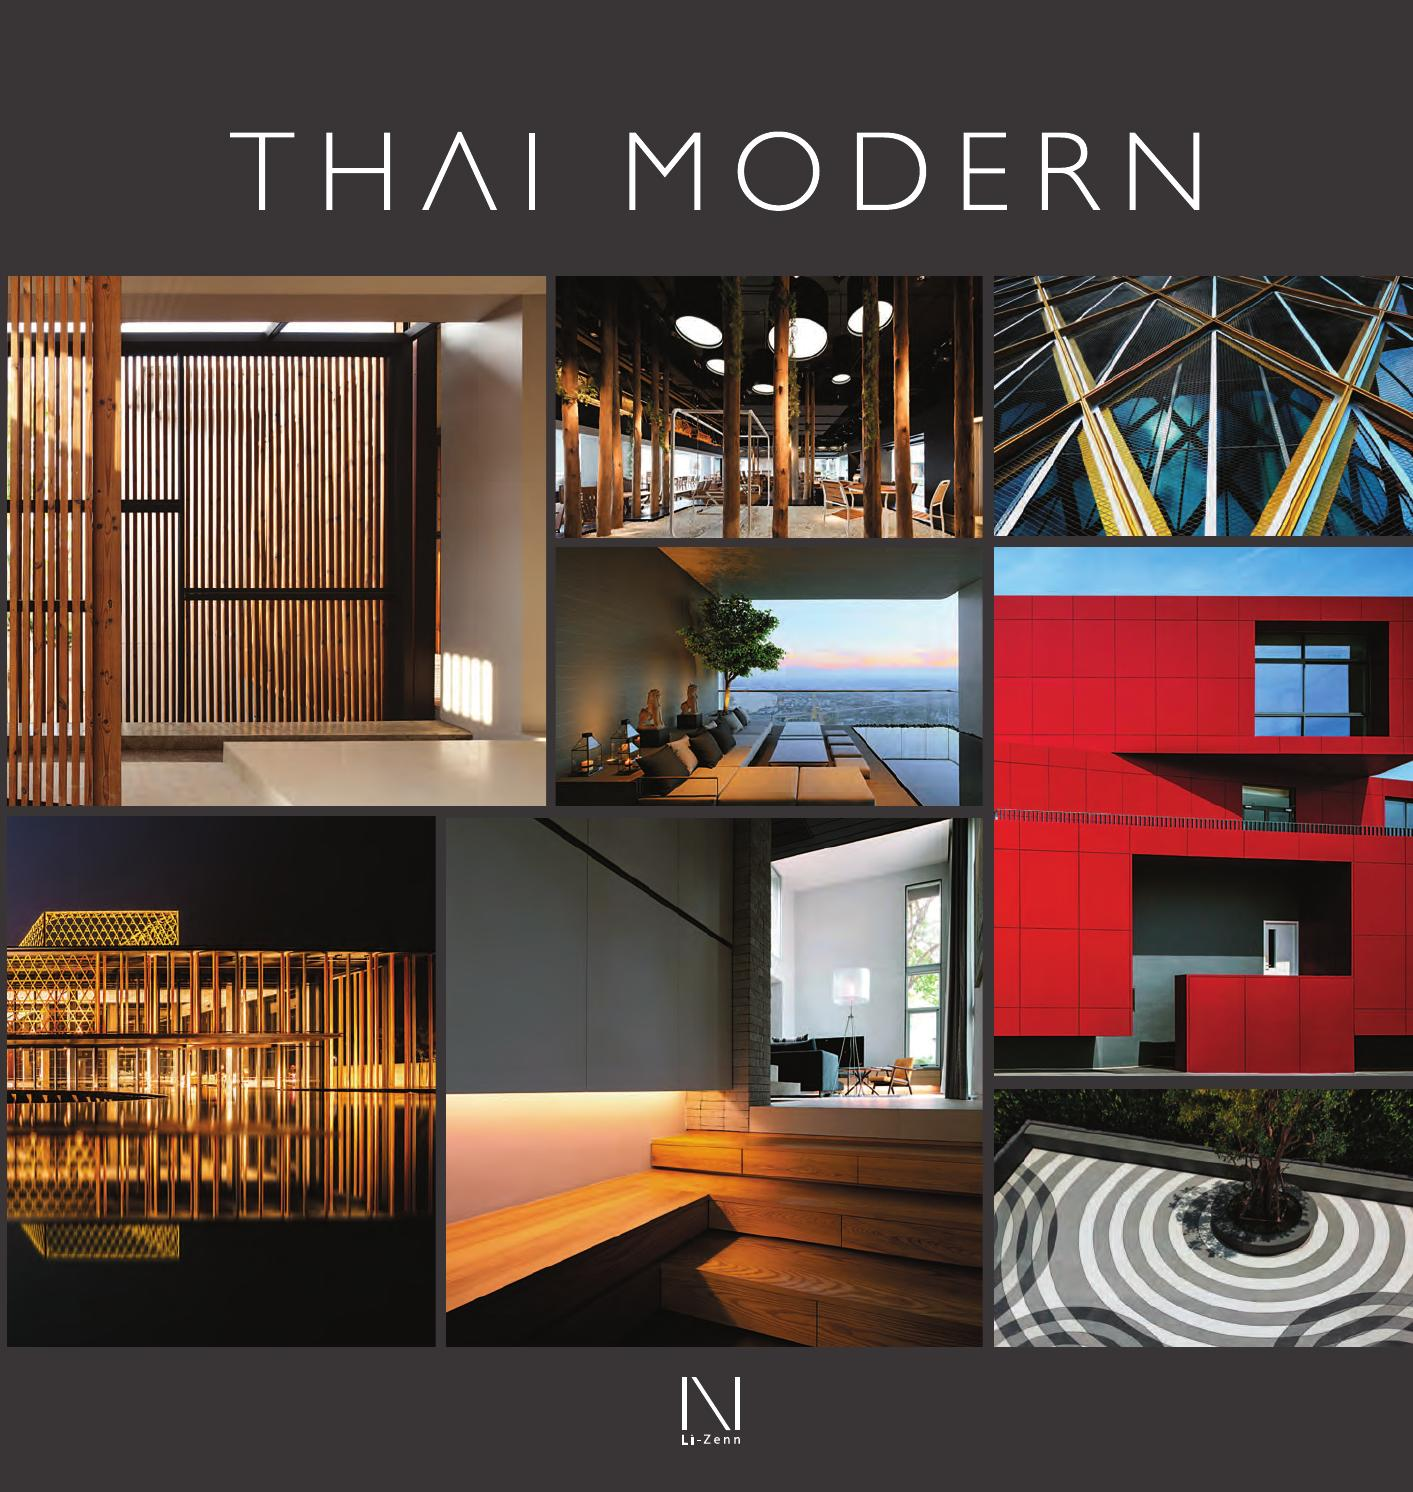 Thai Modern By Li Zenn Issuu